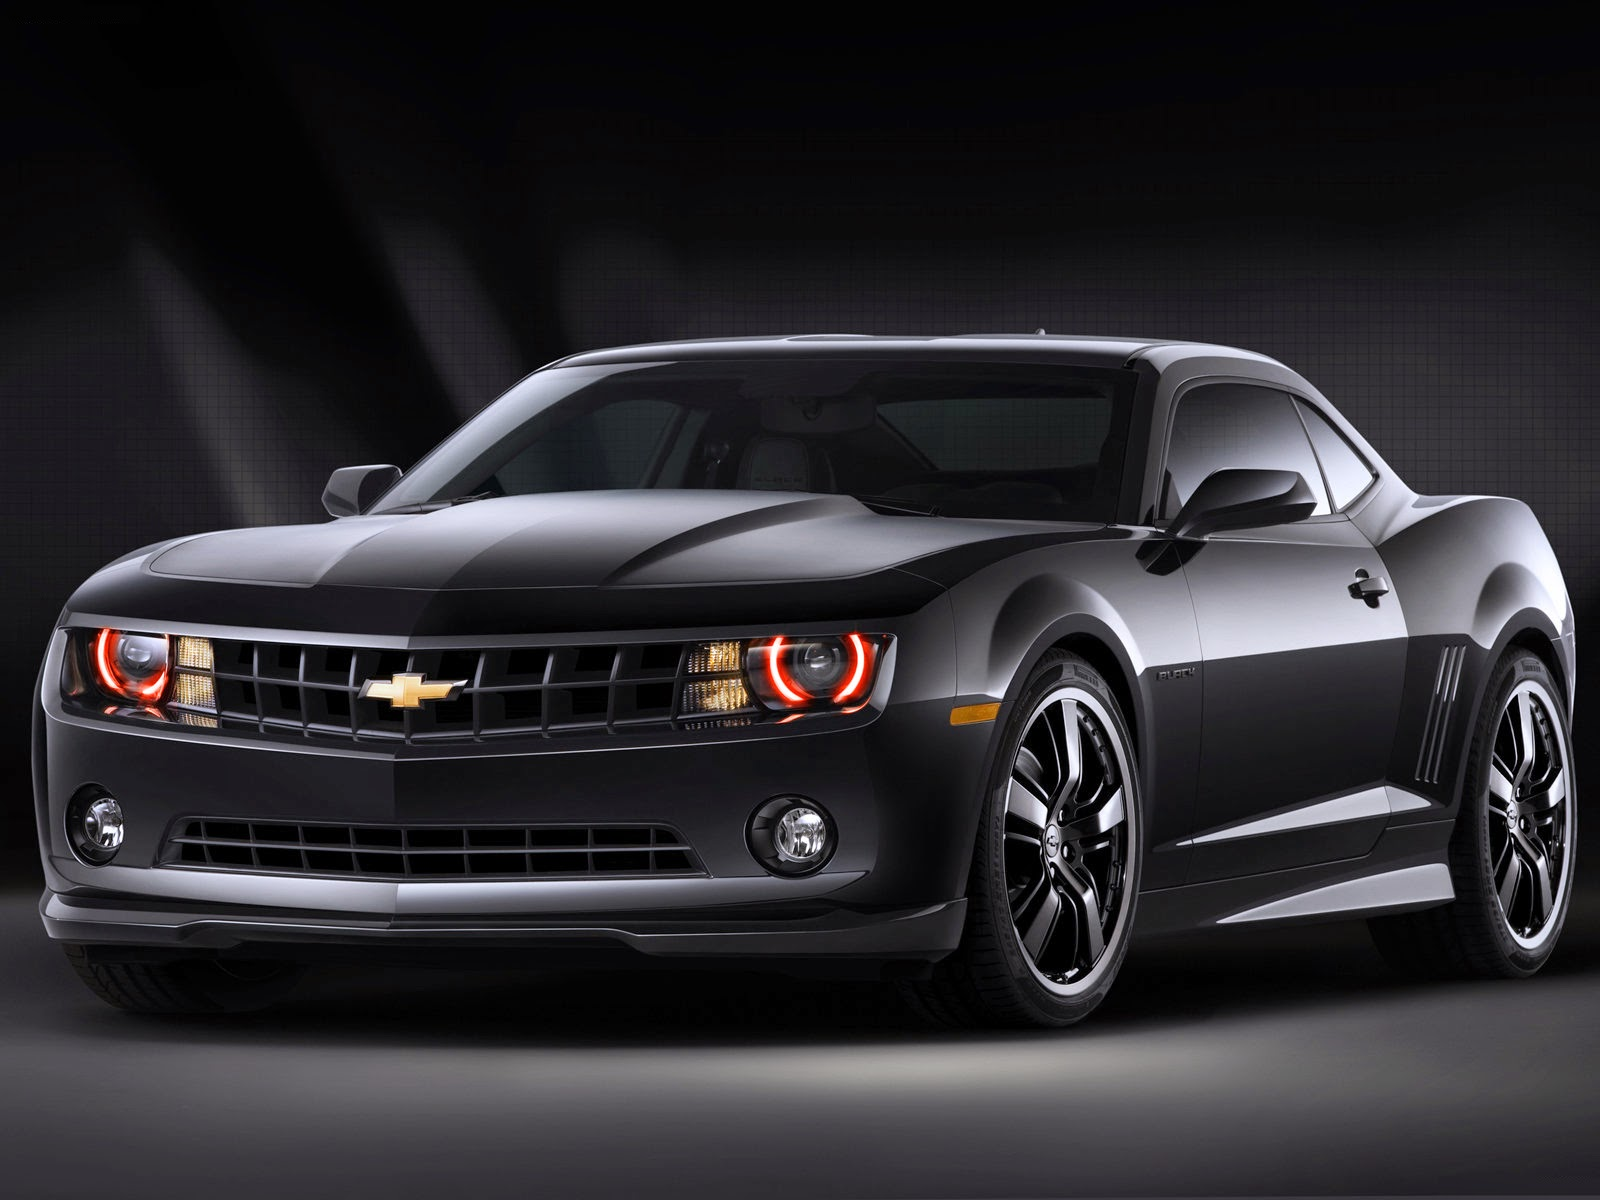 Chevrolet Camaro Black sport muscle car wallpapers HD